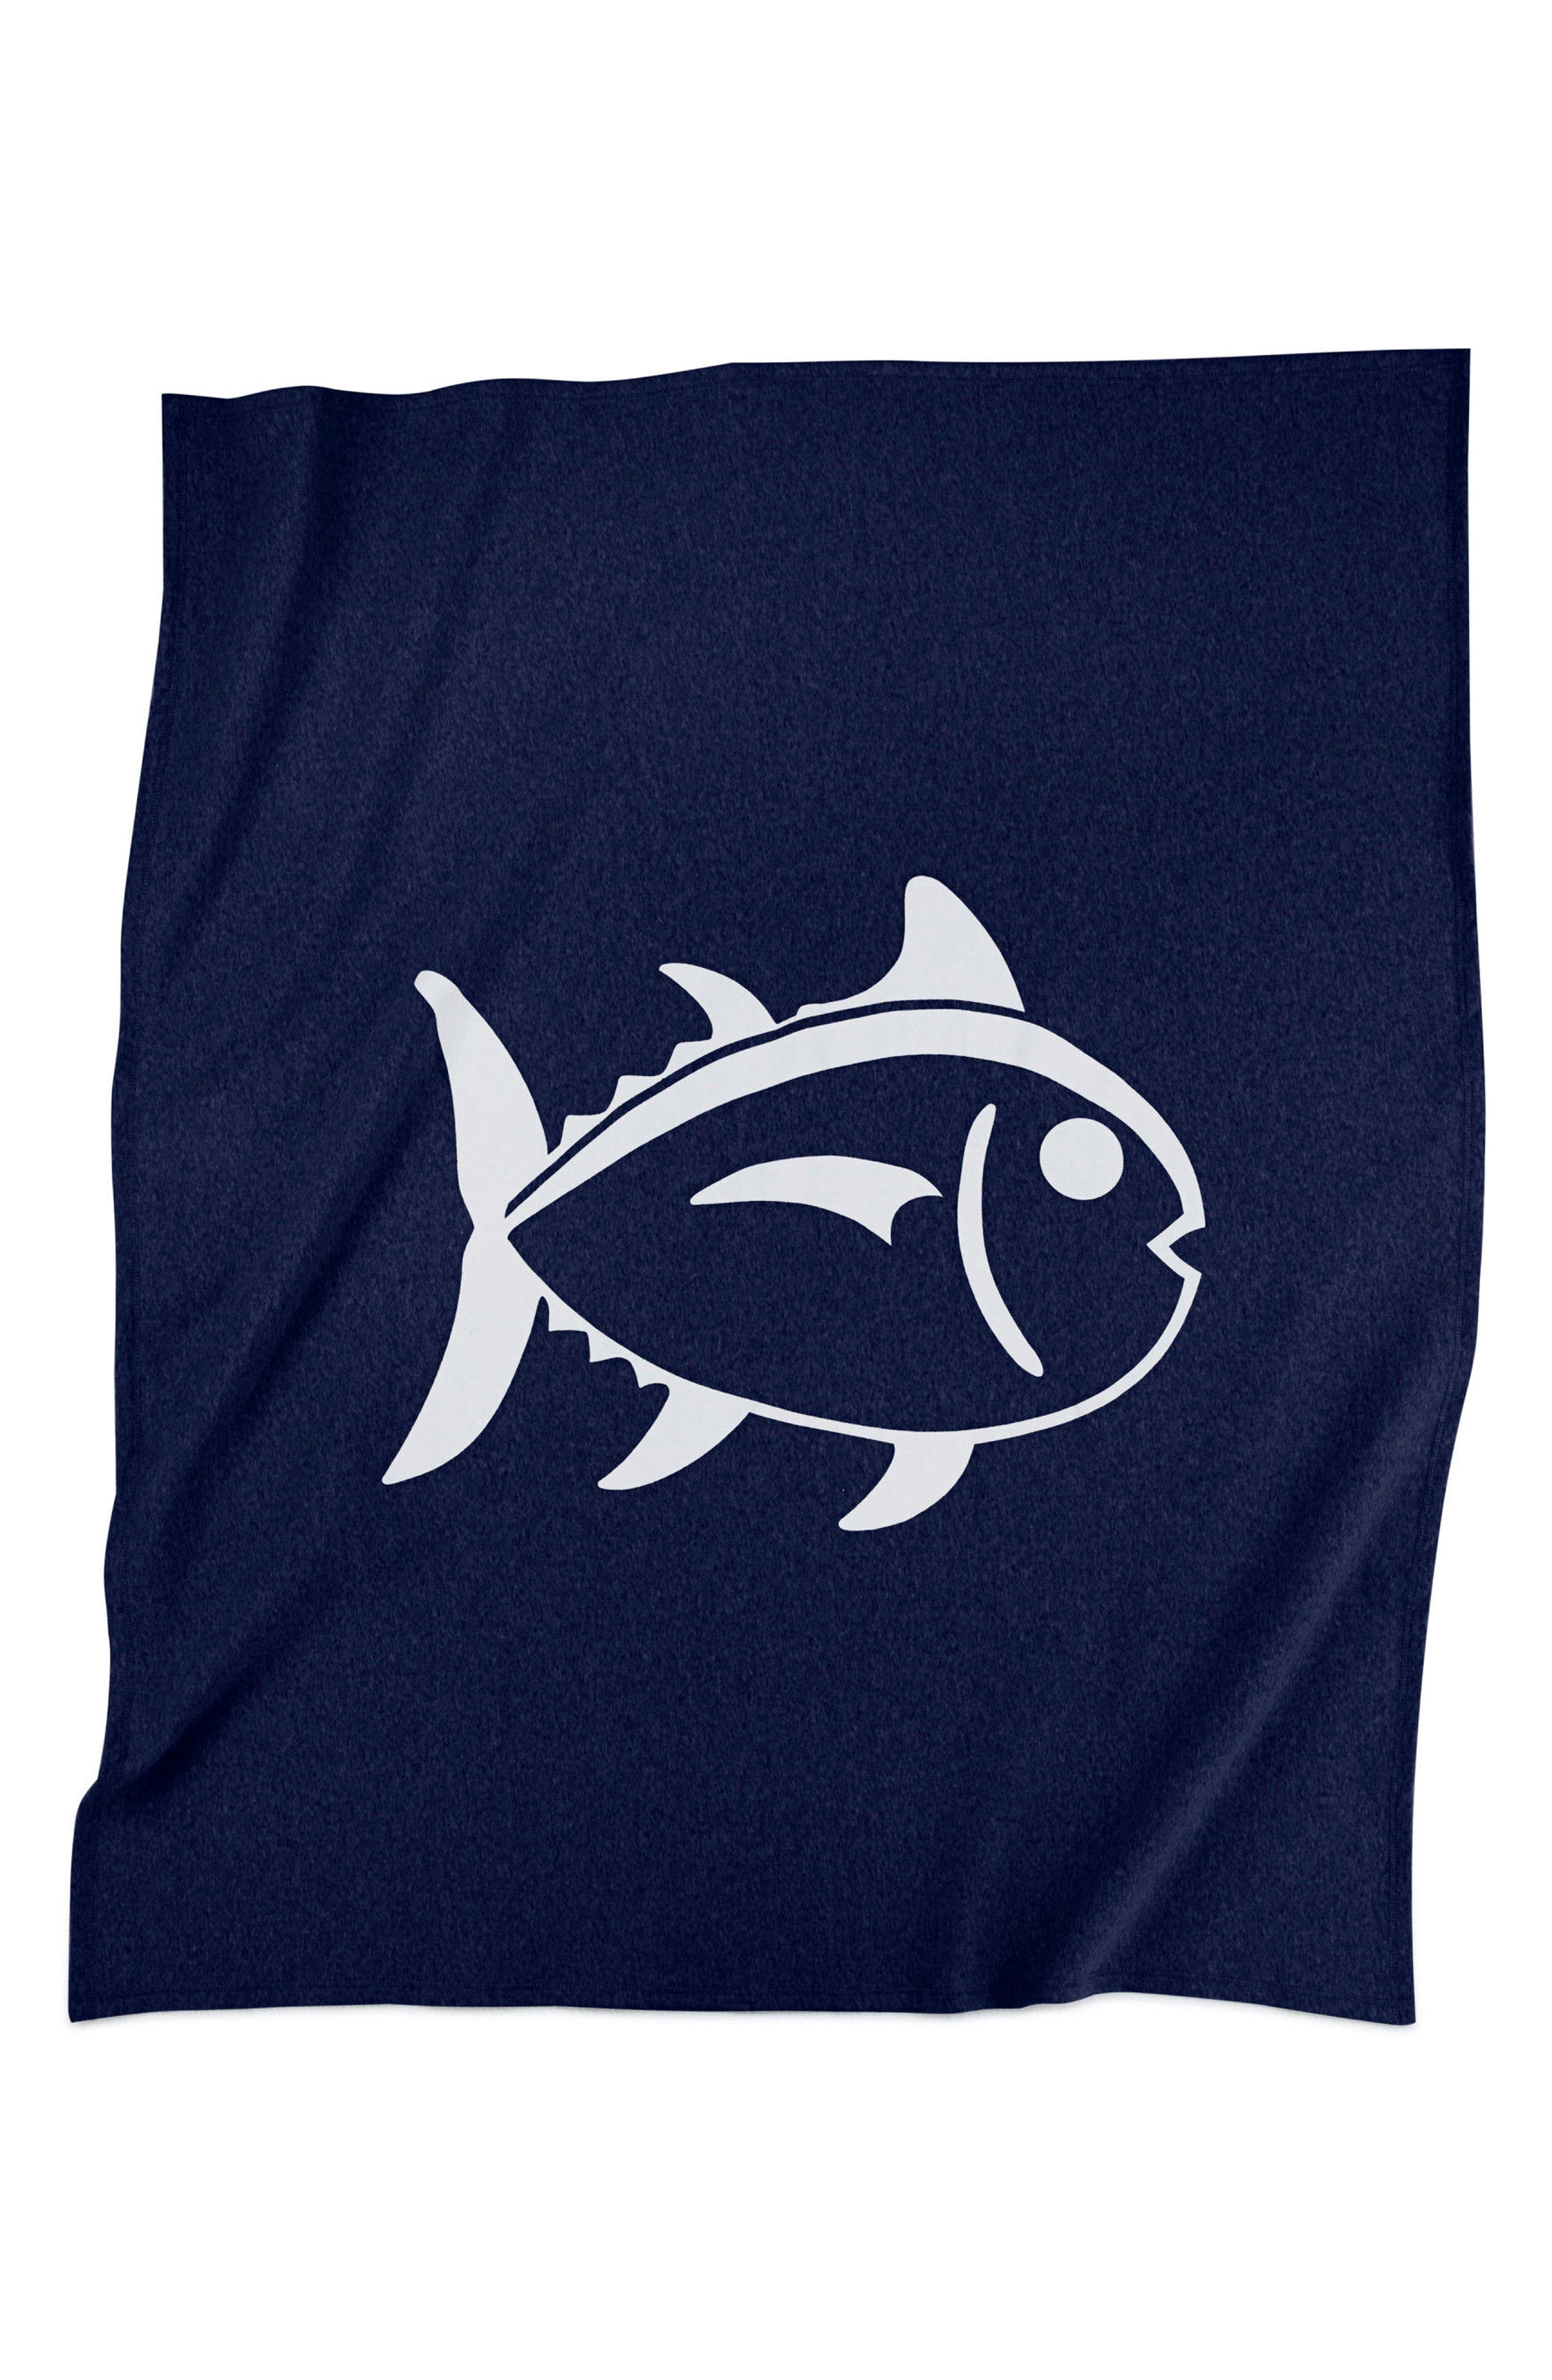 Skipjack Jersey Throw,                         Main,                         color, Navy